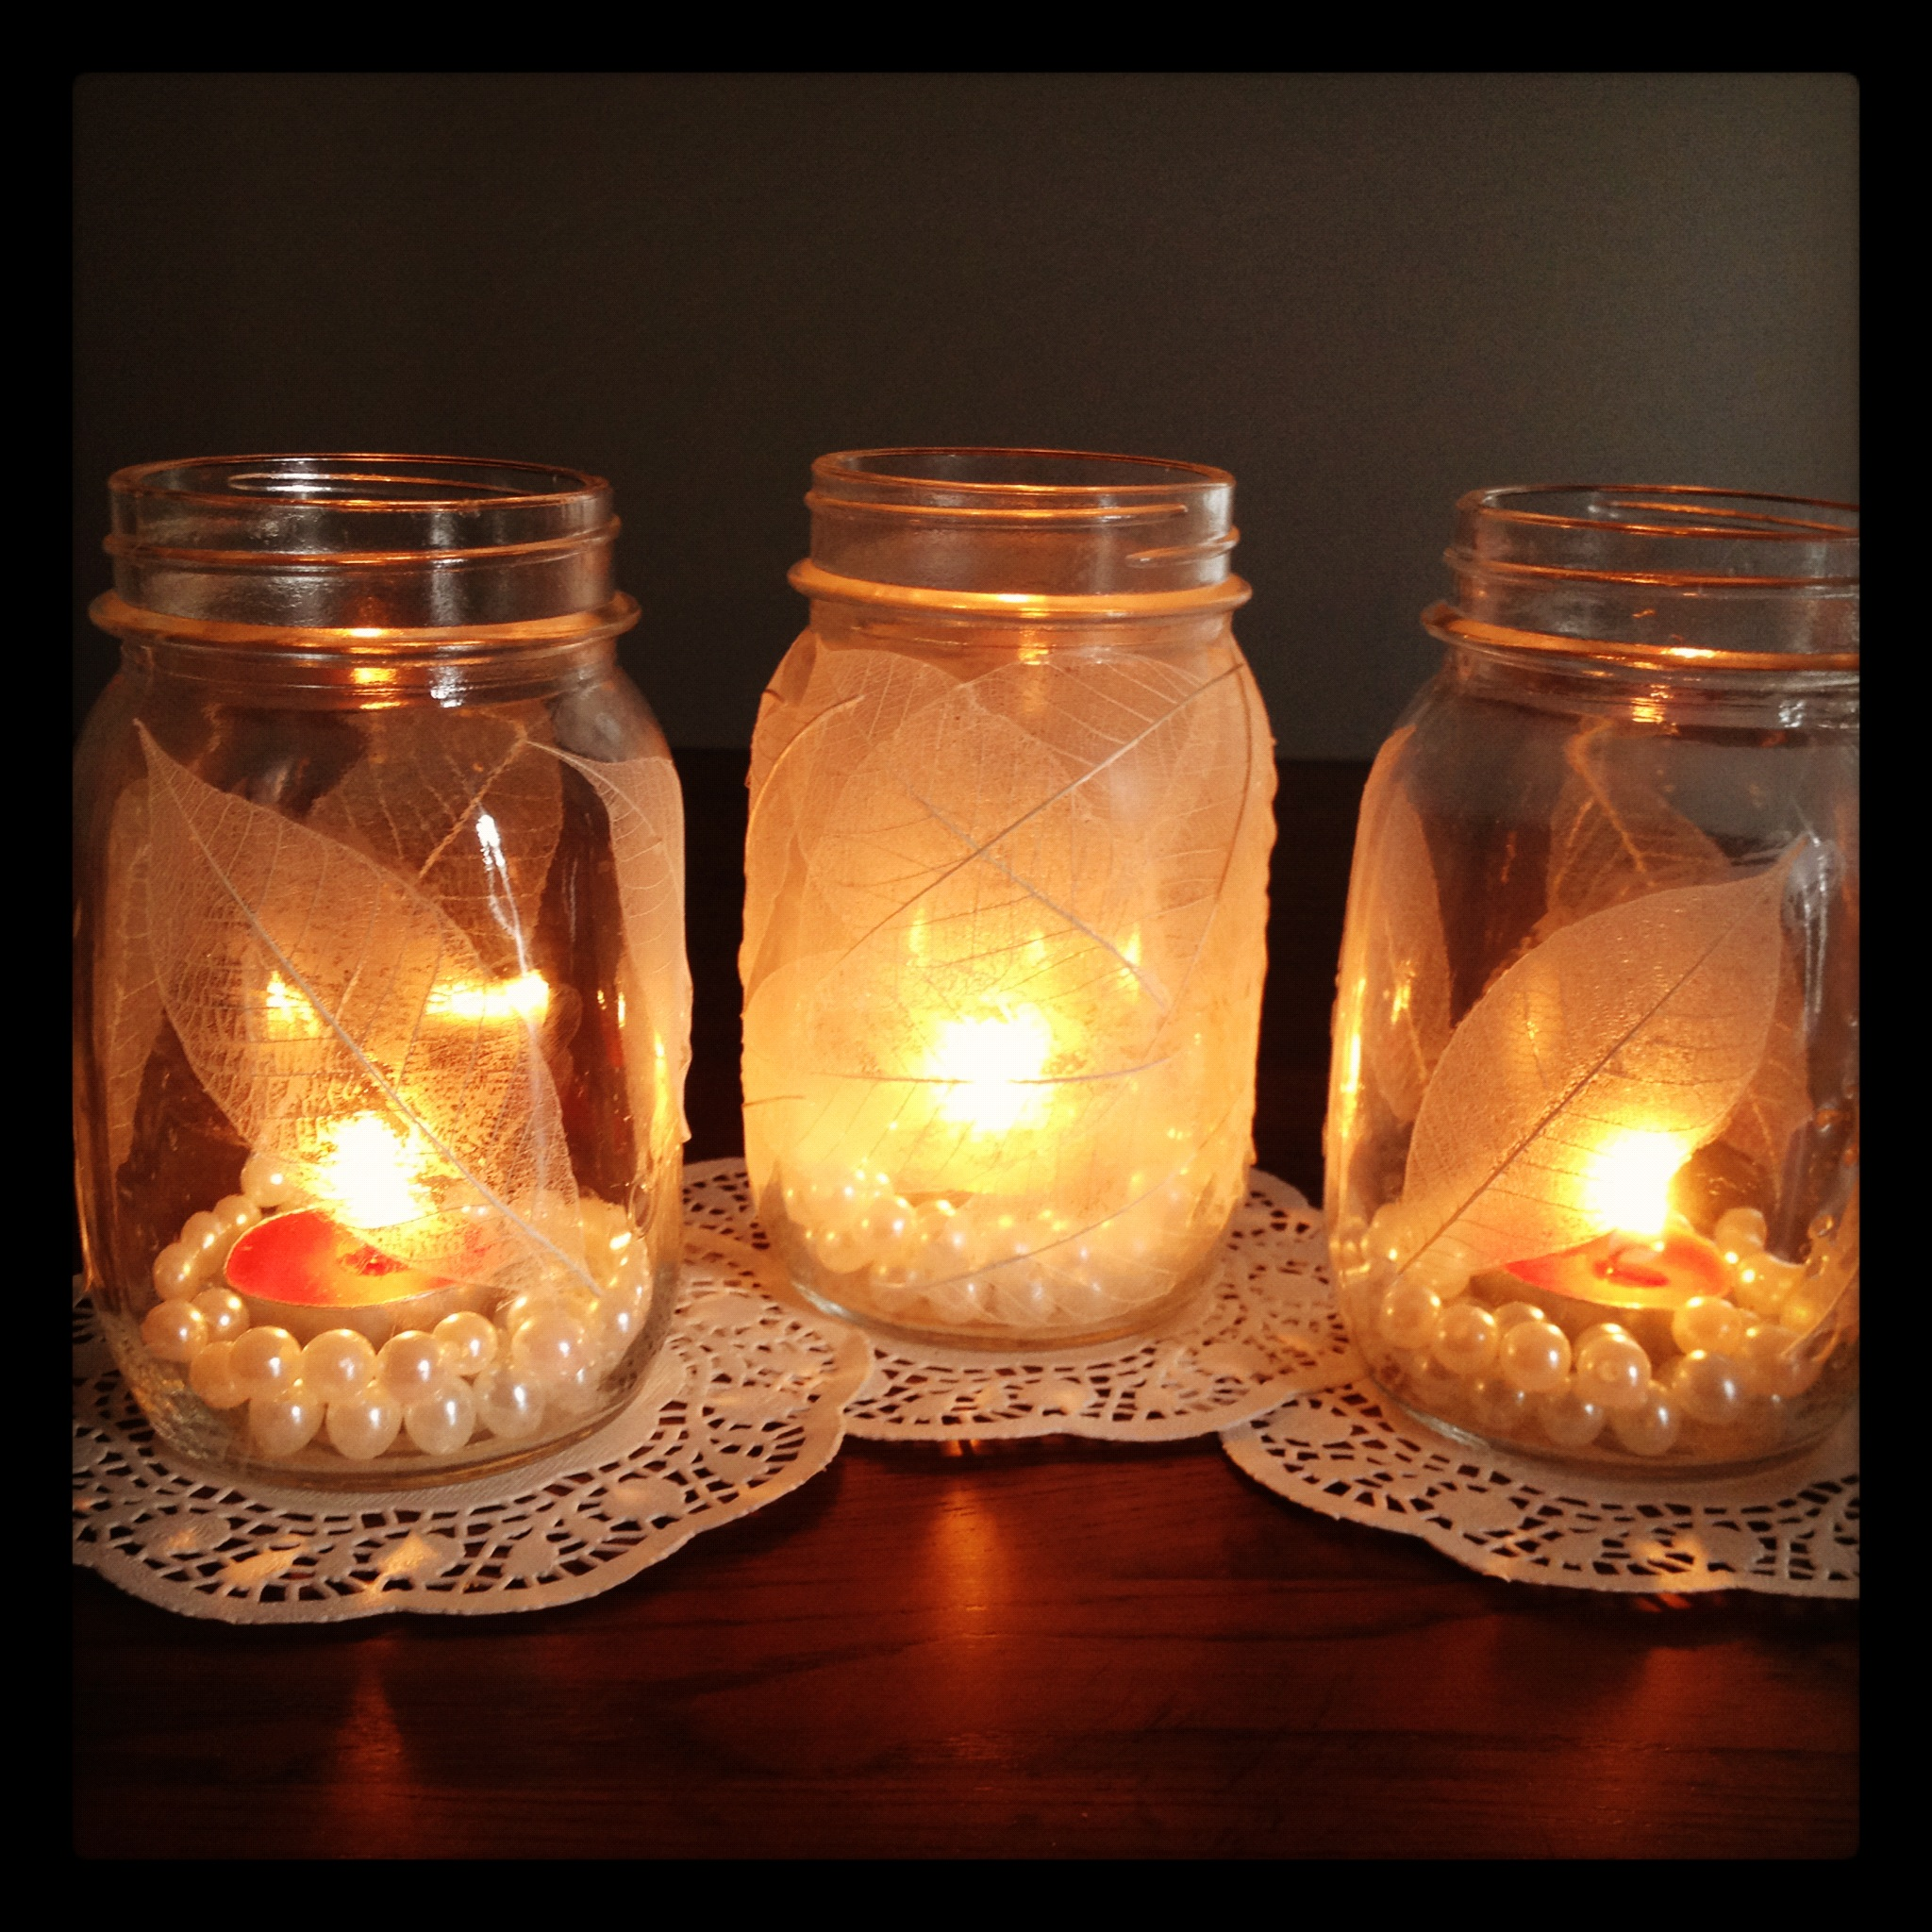 Sparkling wedding diy projects mason jars for Projects to do with mason jars